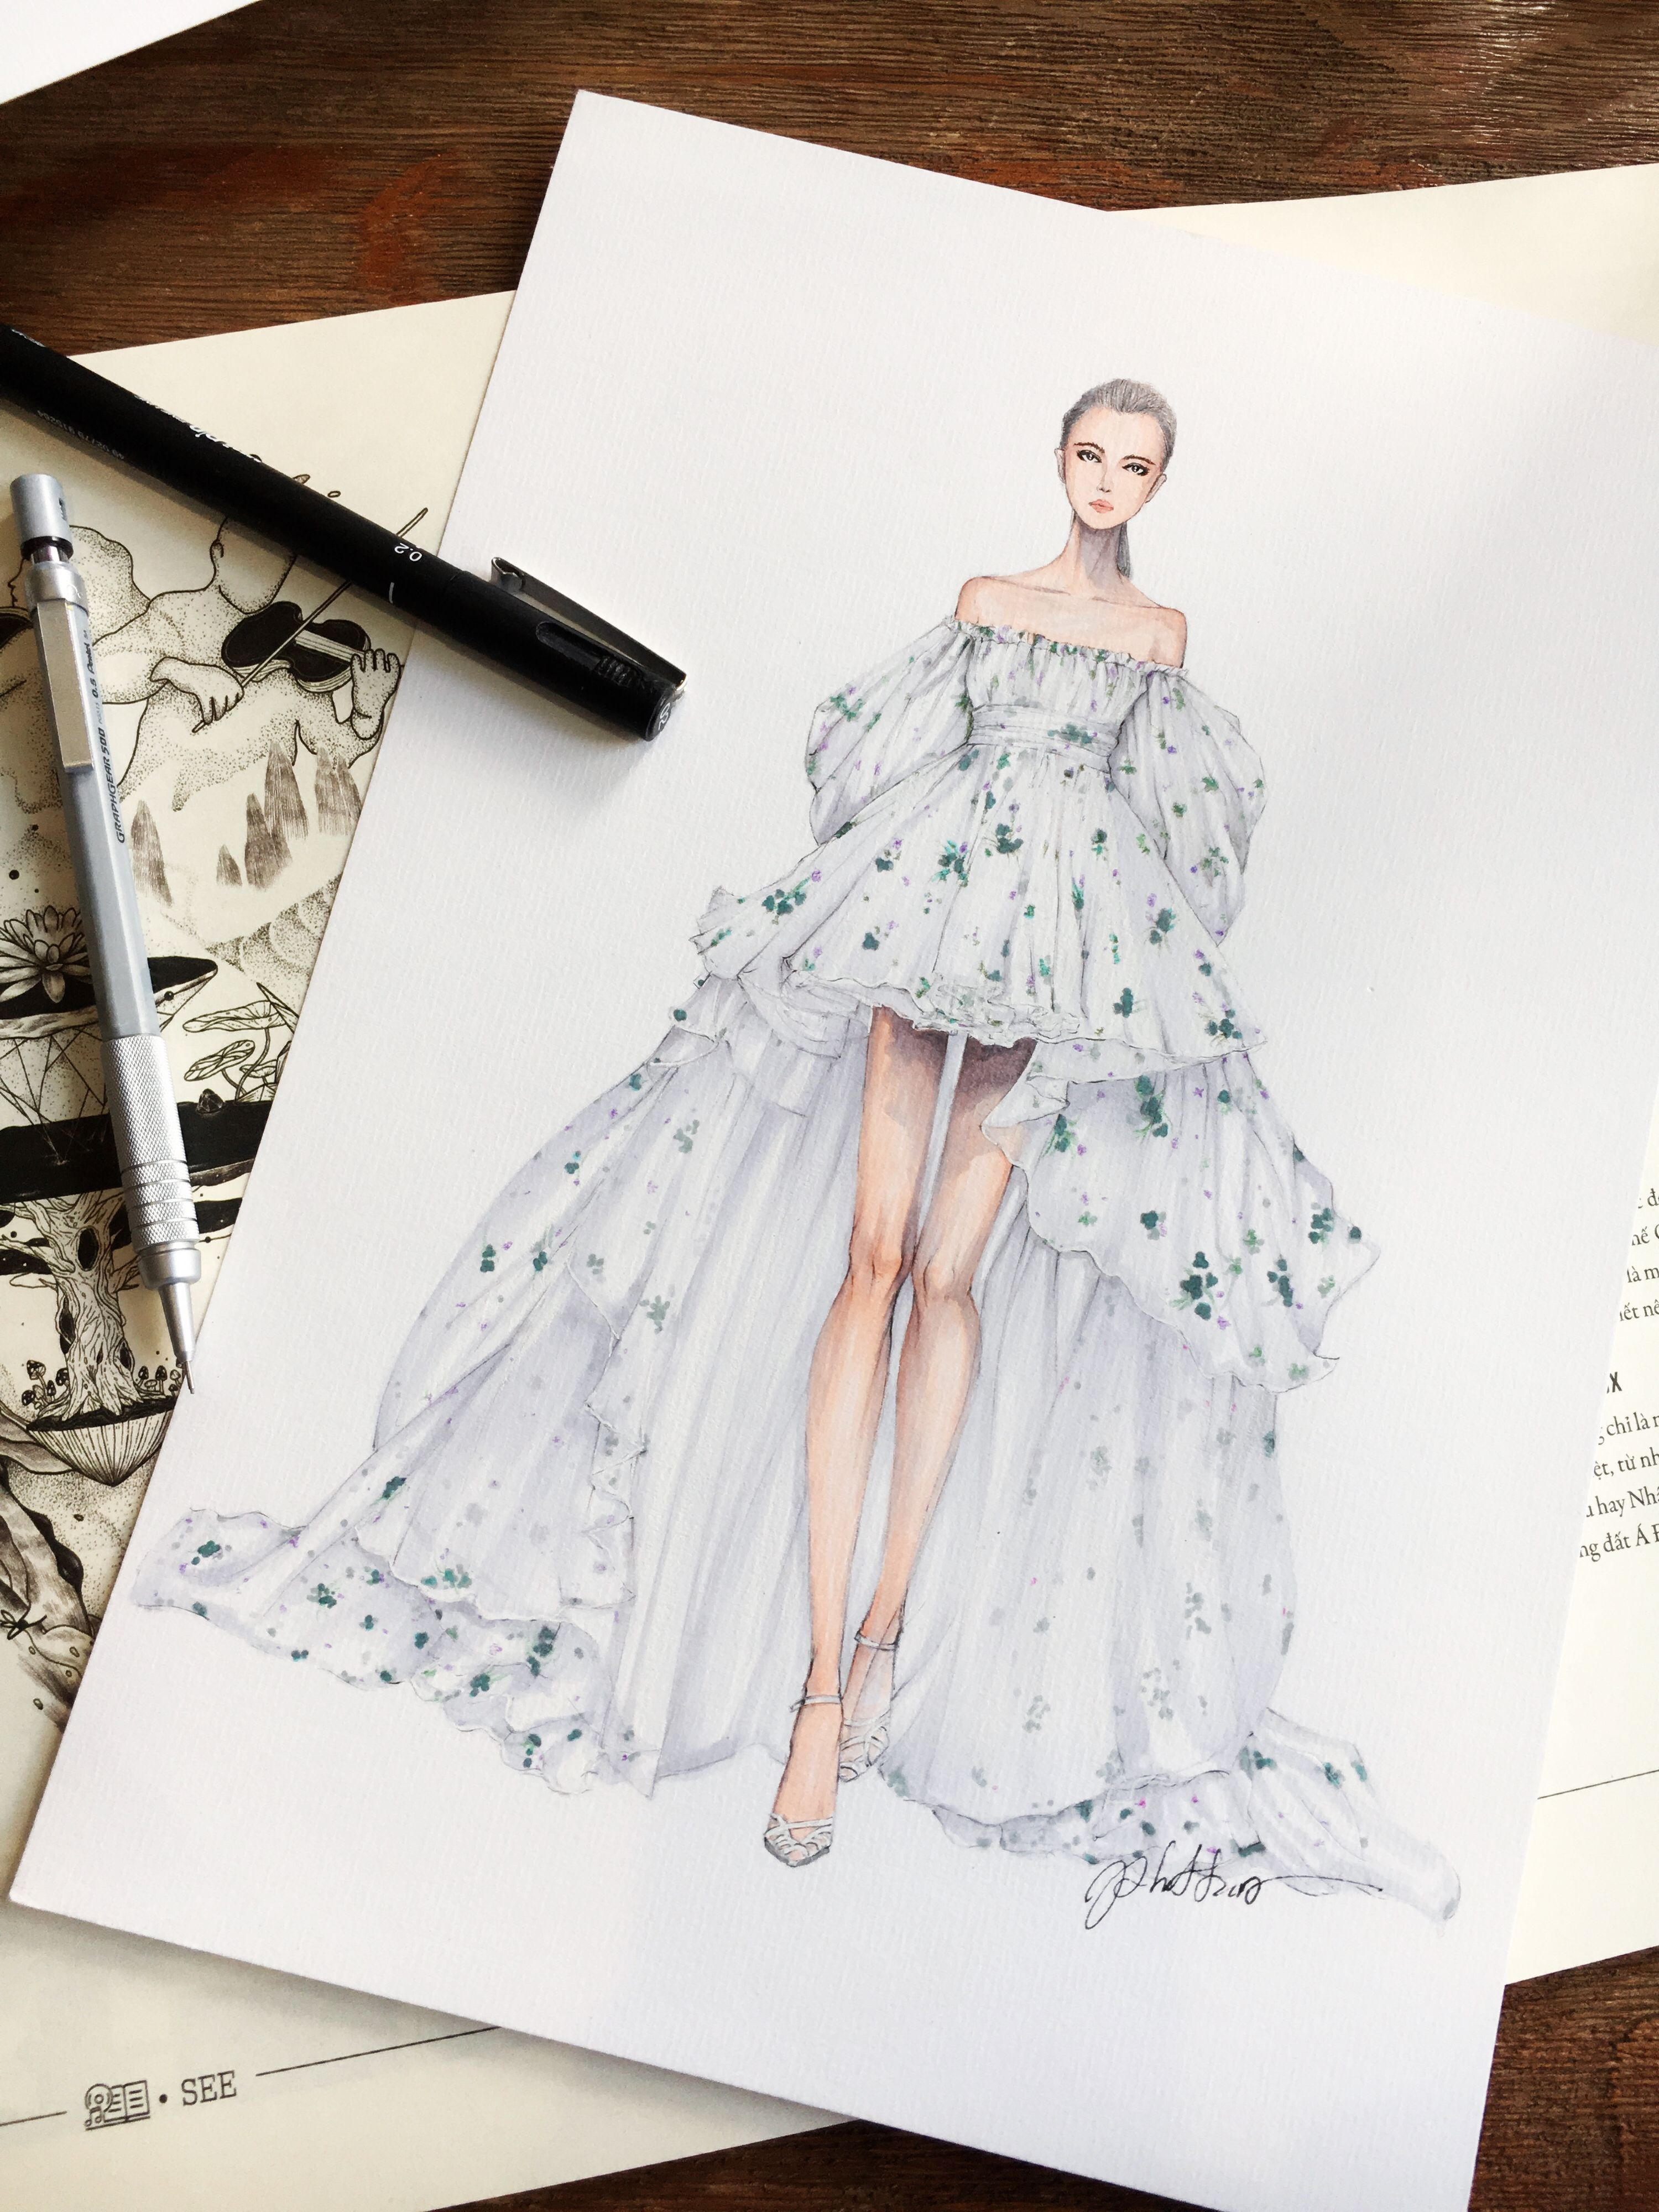 Best fashion design drawings ideas on also pin by anne carolyne croquis pinterest sketches rh